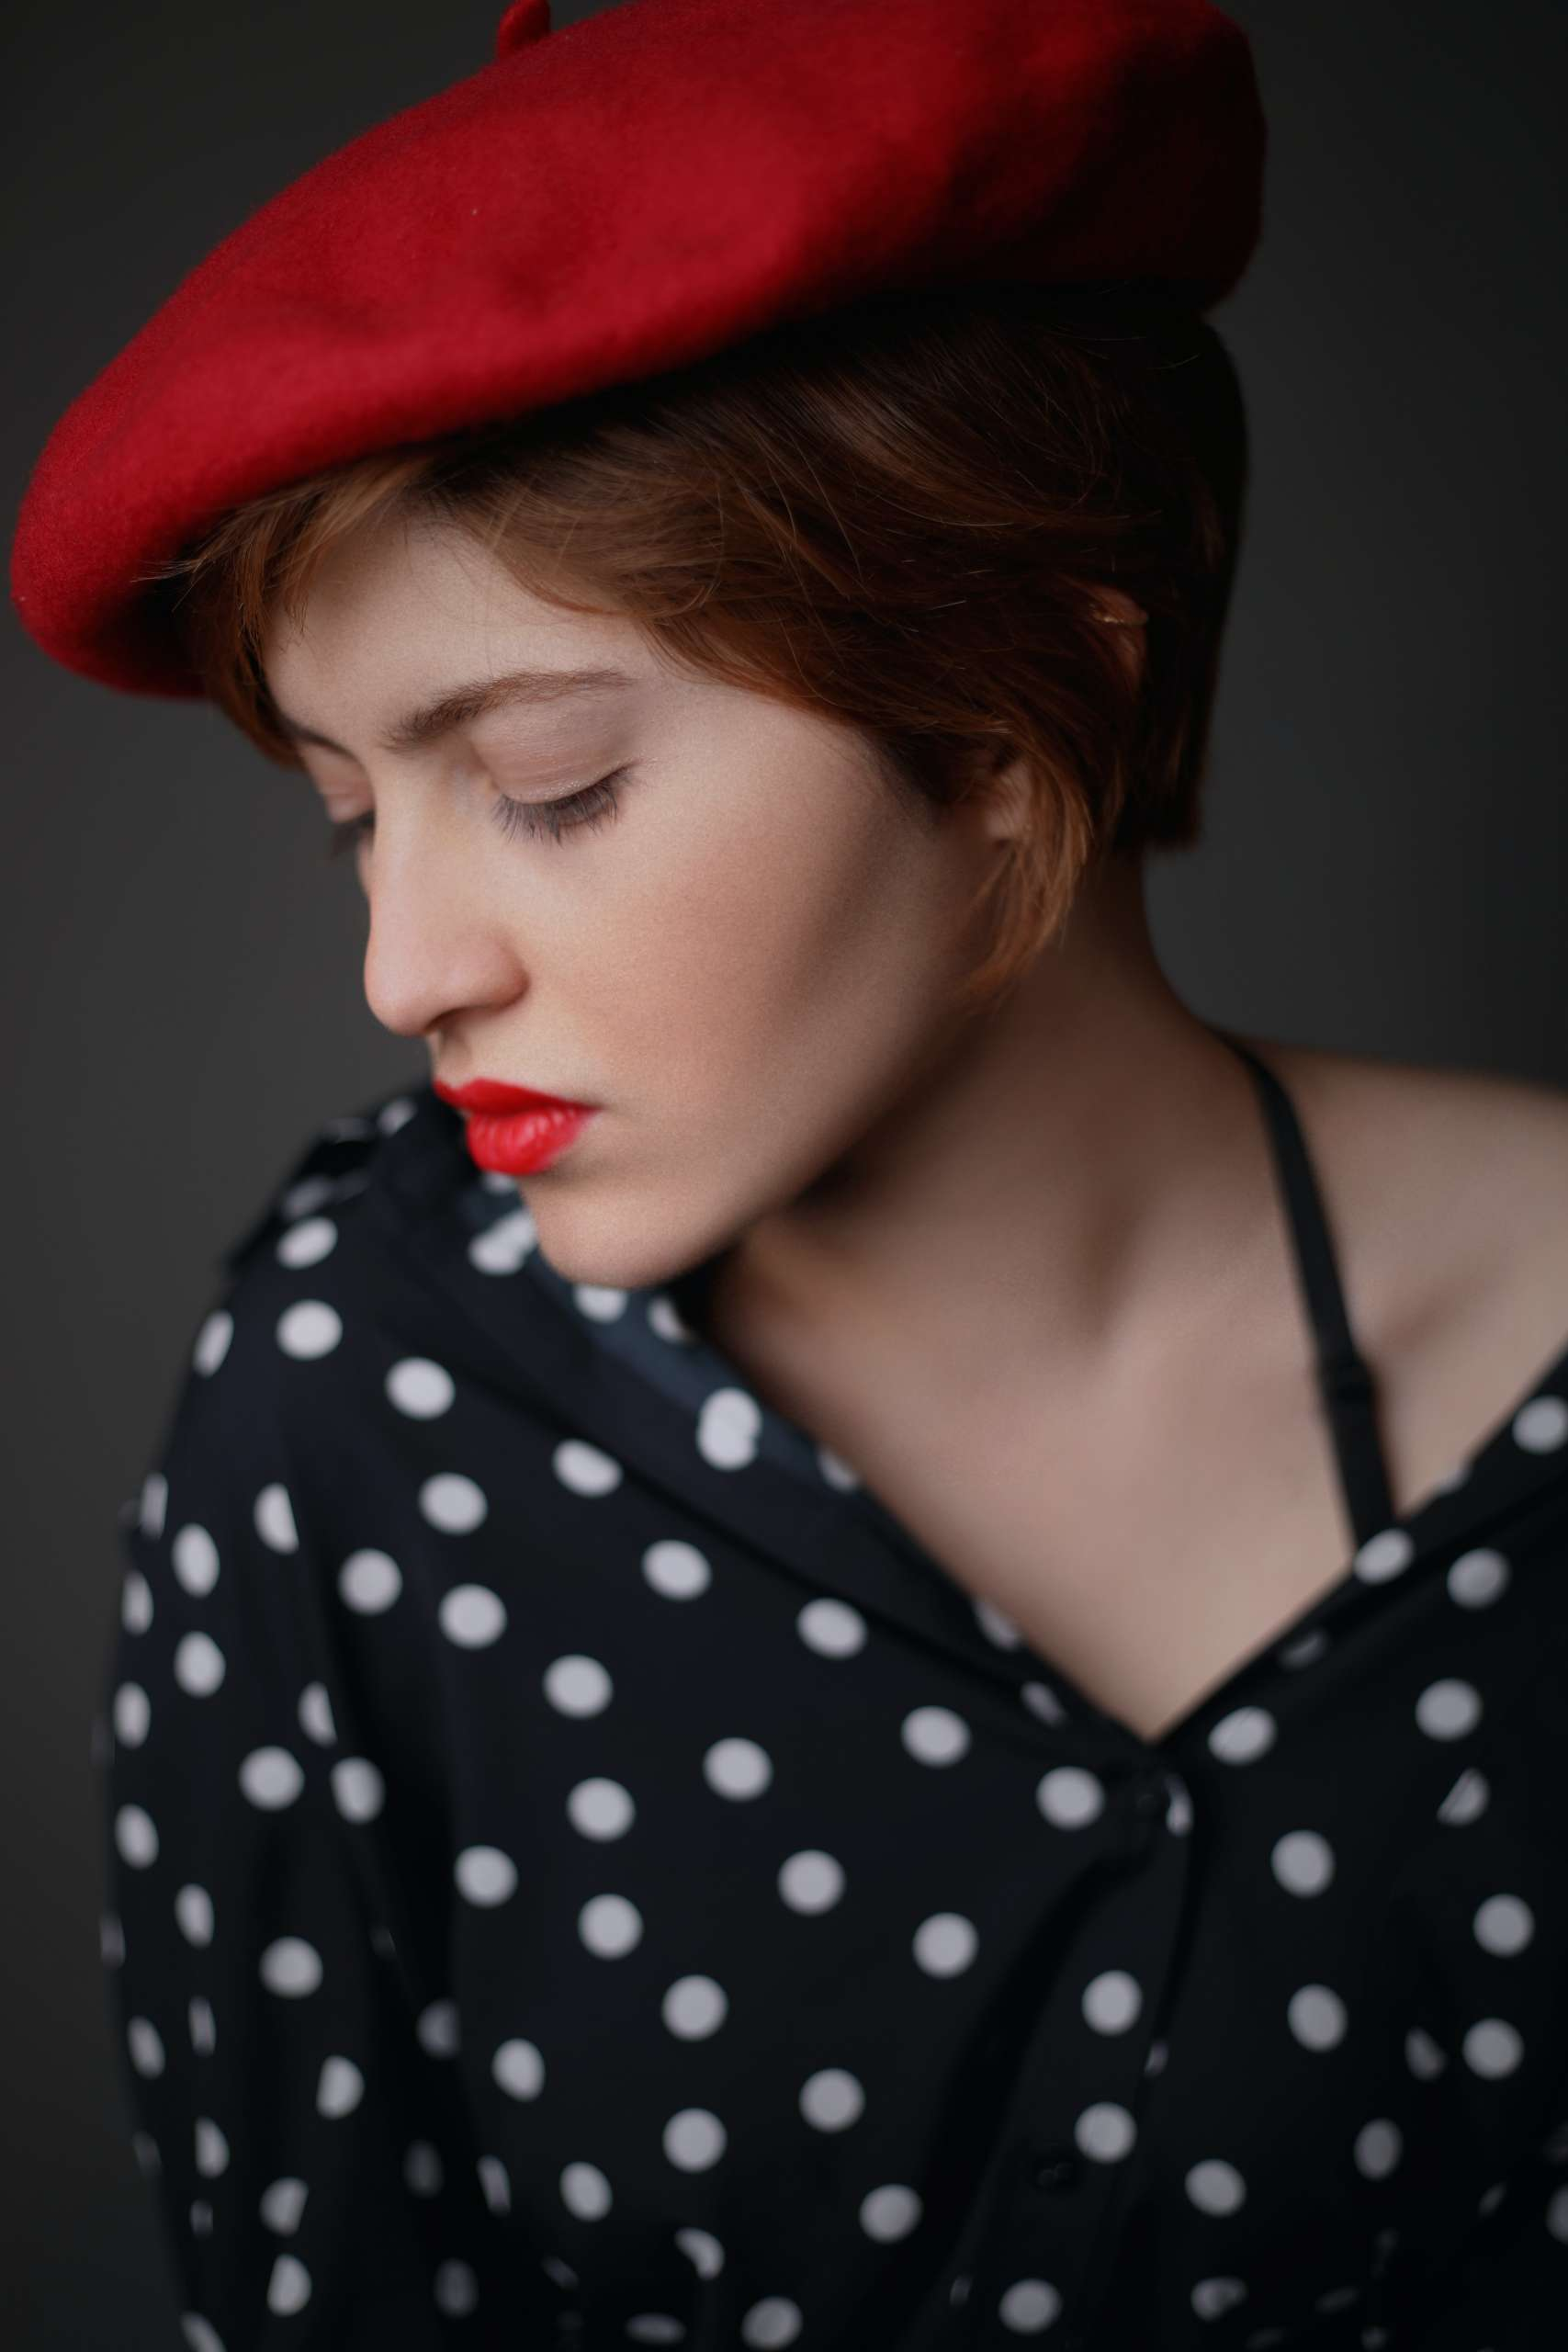 woman wearing red newsboy hat and black and white polka-dotted button-up top